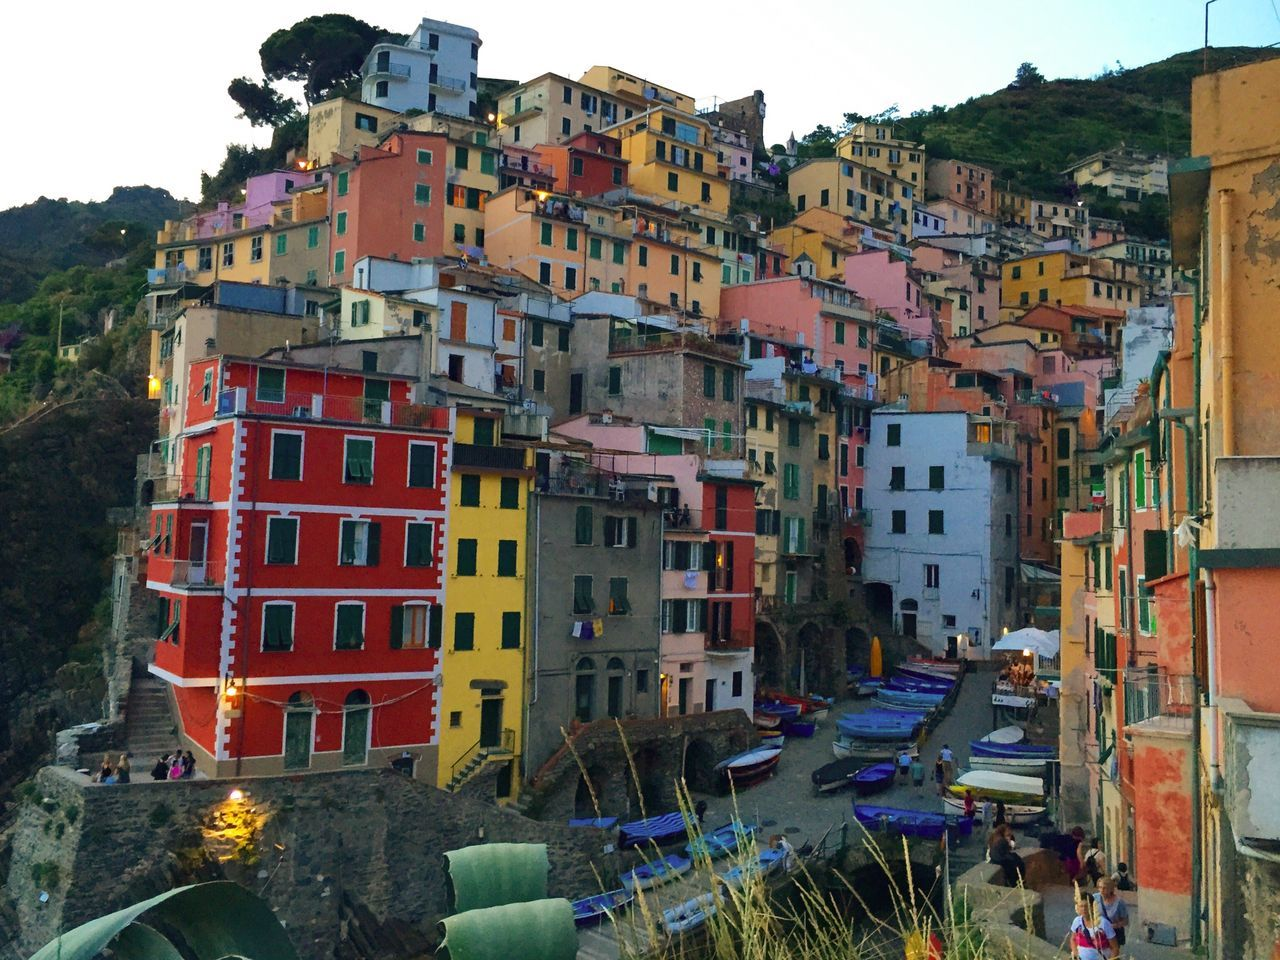 Riomaggiore Cinque Terre Italy Italia National Park UNESCO World Heritage Site Fishing Village Coast Liguria Italian Riviera Dusk Picturesque Beautiful Travel Photography Travel IPhoneography